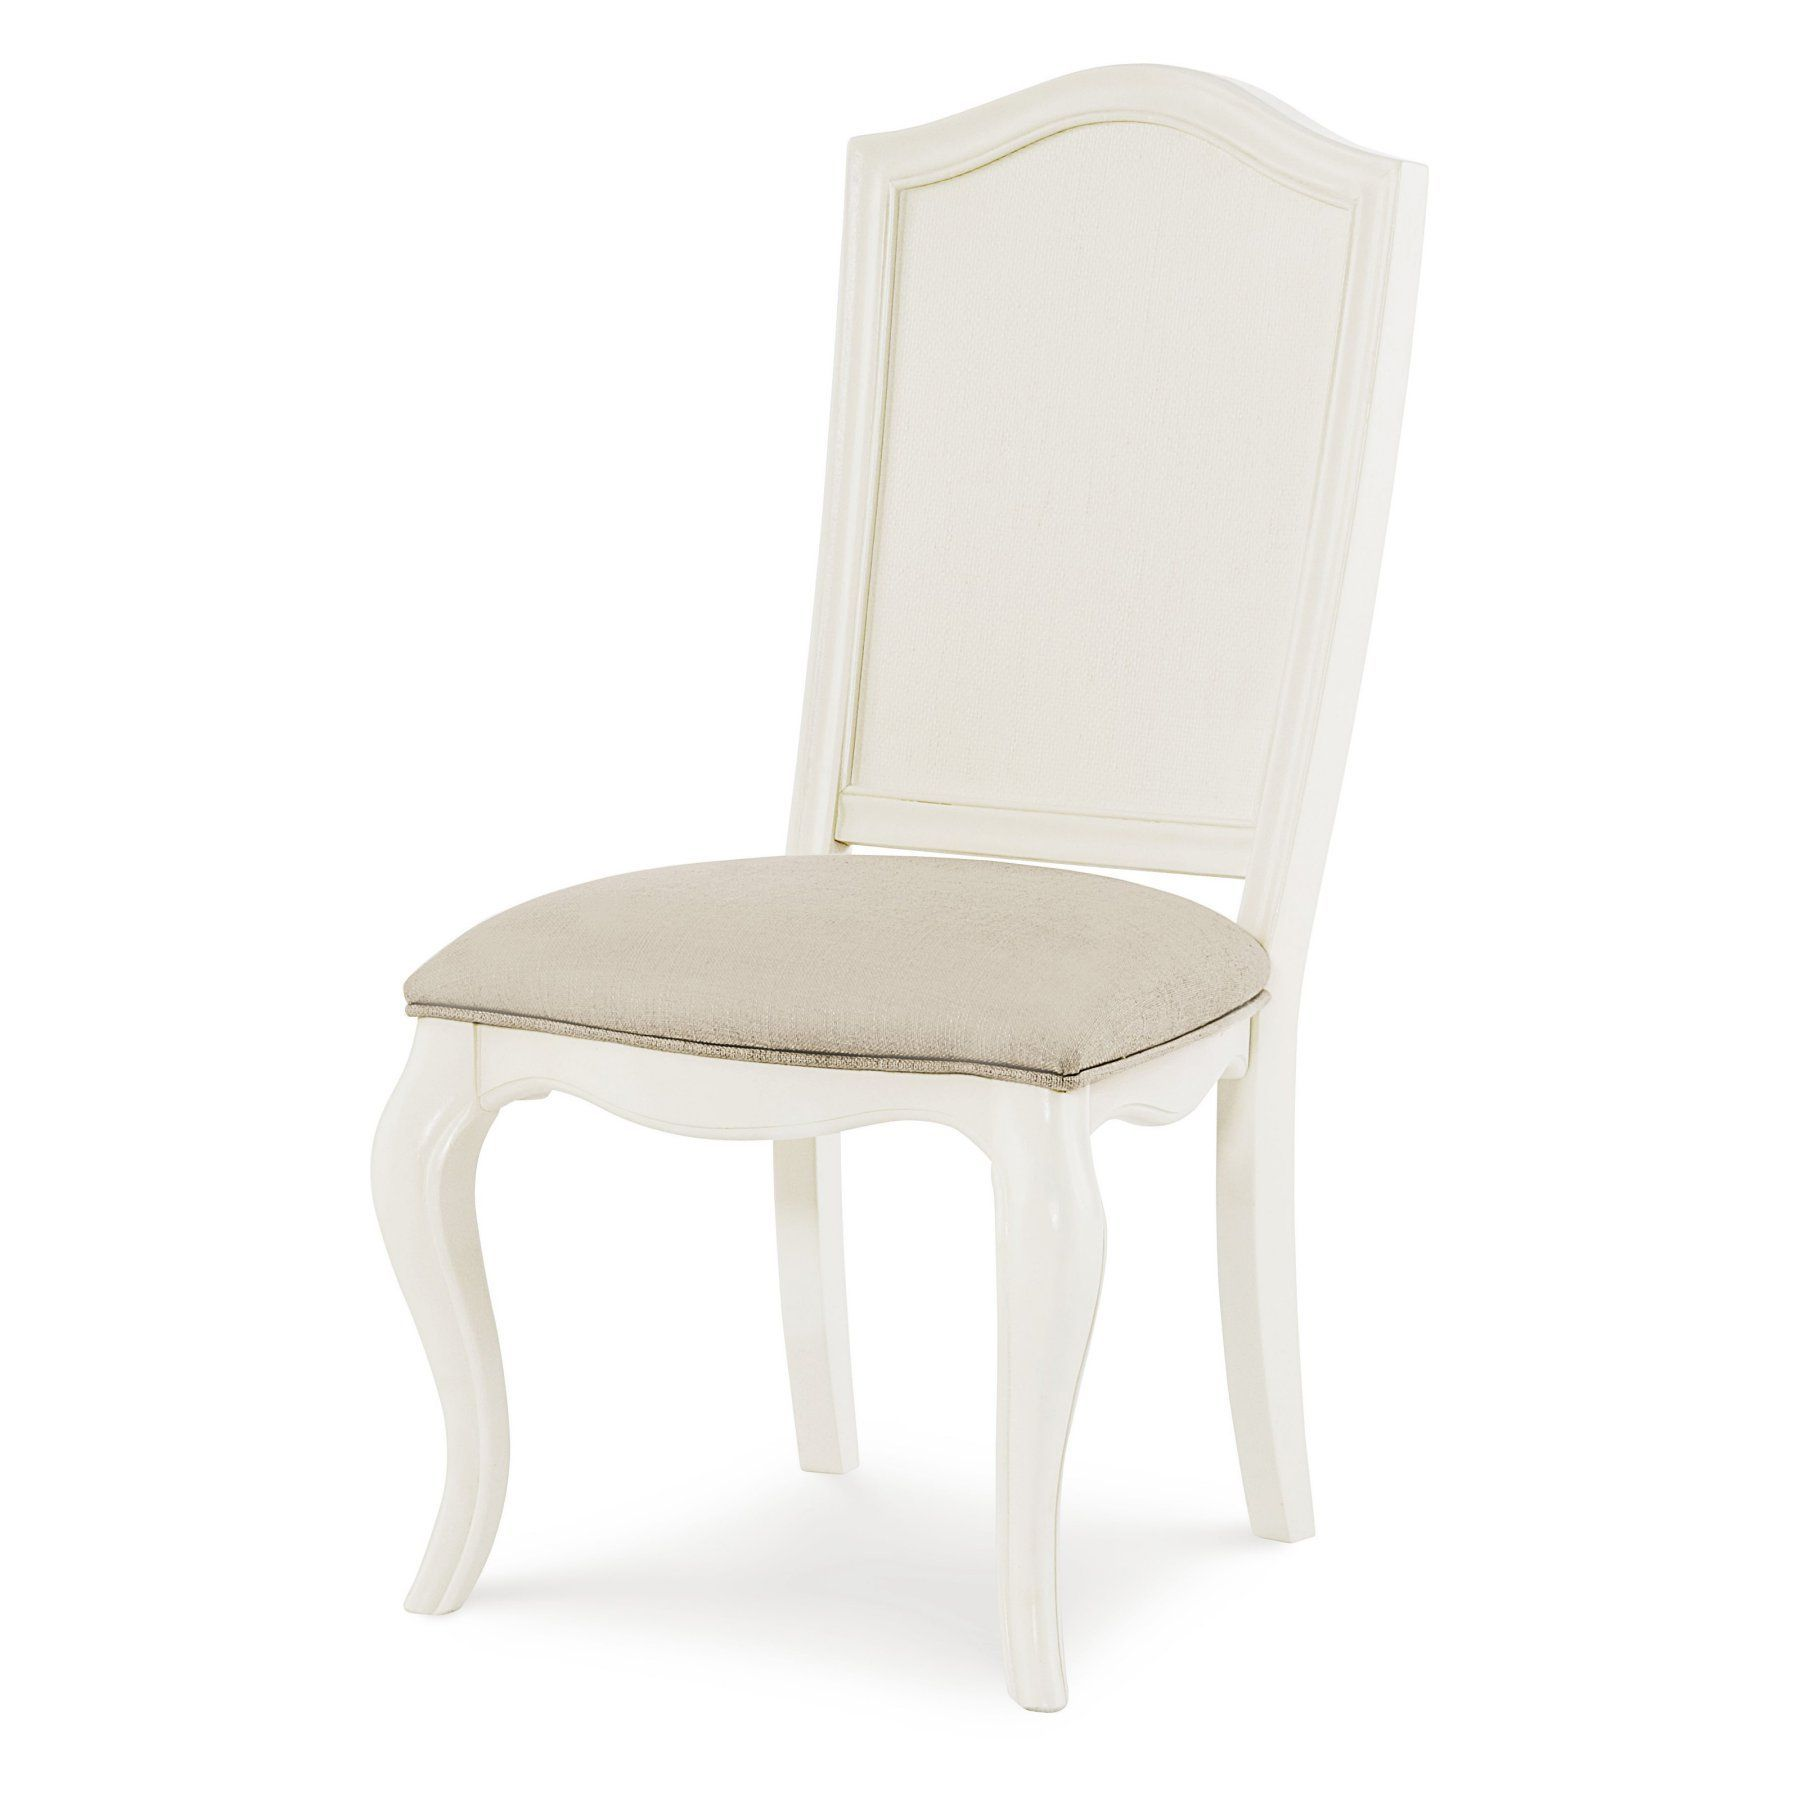 Wendy Bellissimo By LC Kids Harmony Desk Chair   4910 640KD